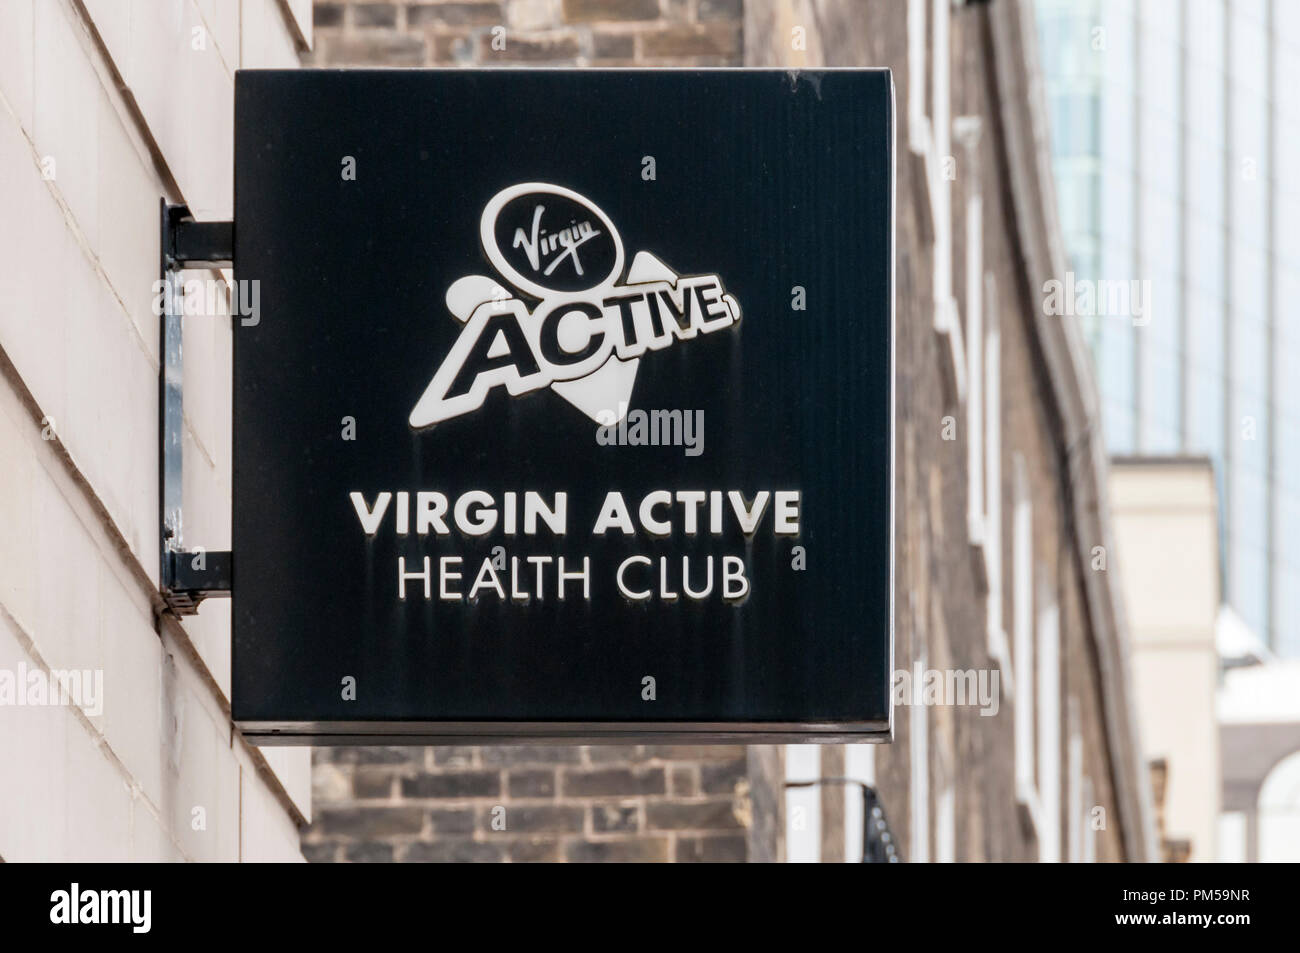 Signe pour Virgin Active Health Club à Bunhill Row, Londres. Photo Stock